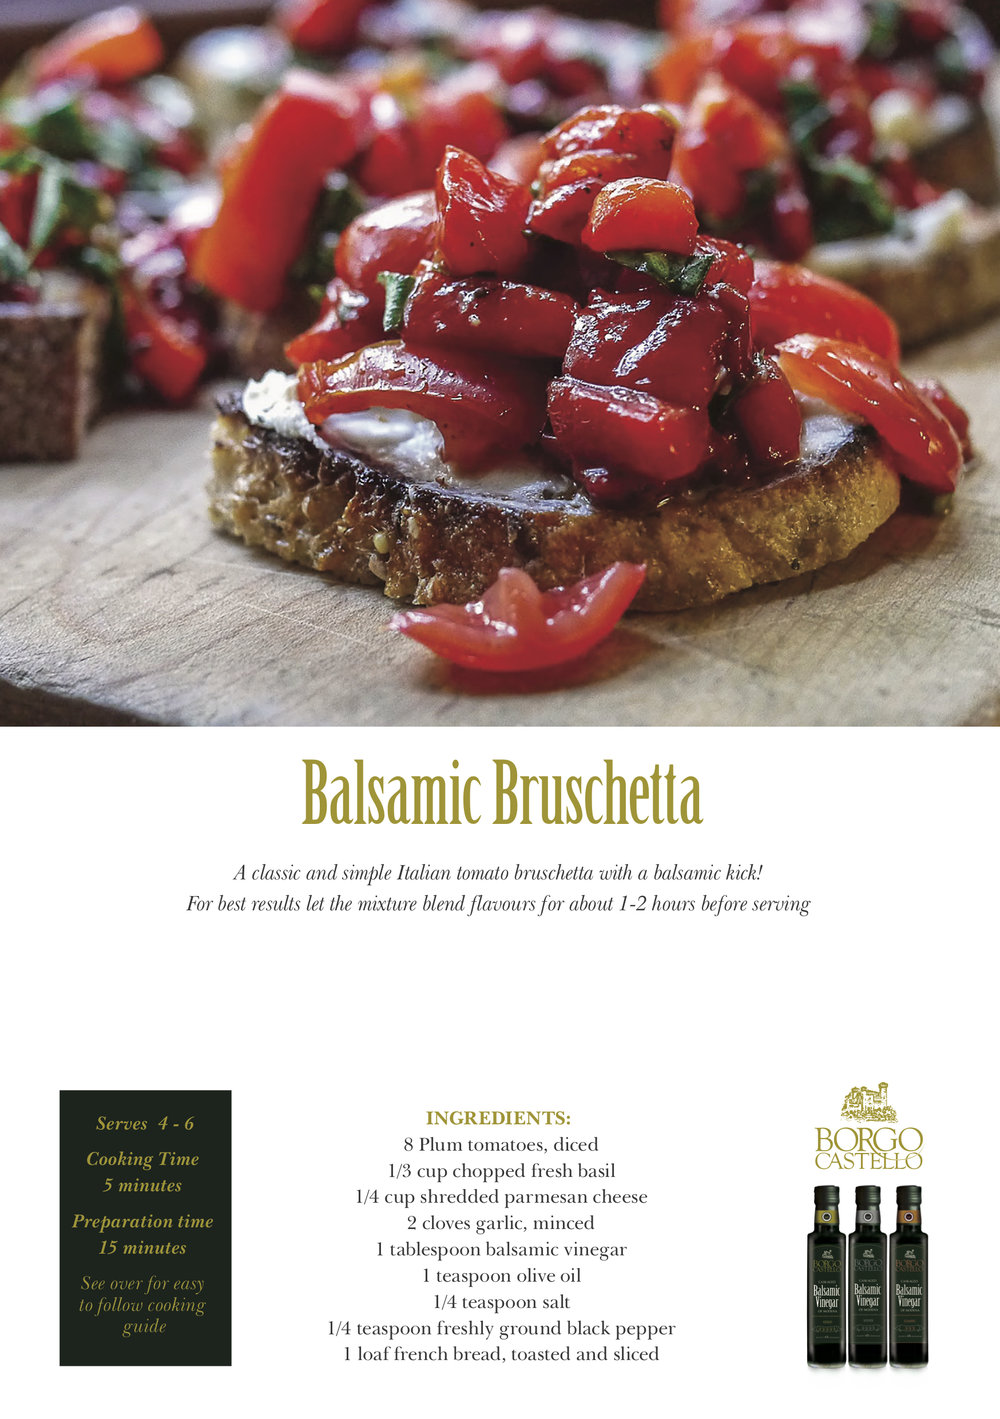 Balsamic Bruschetta web.jpg